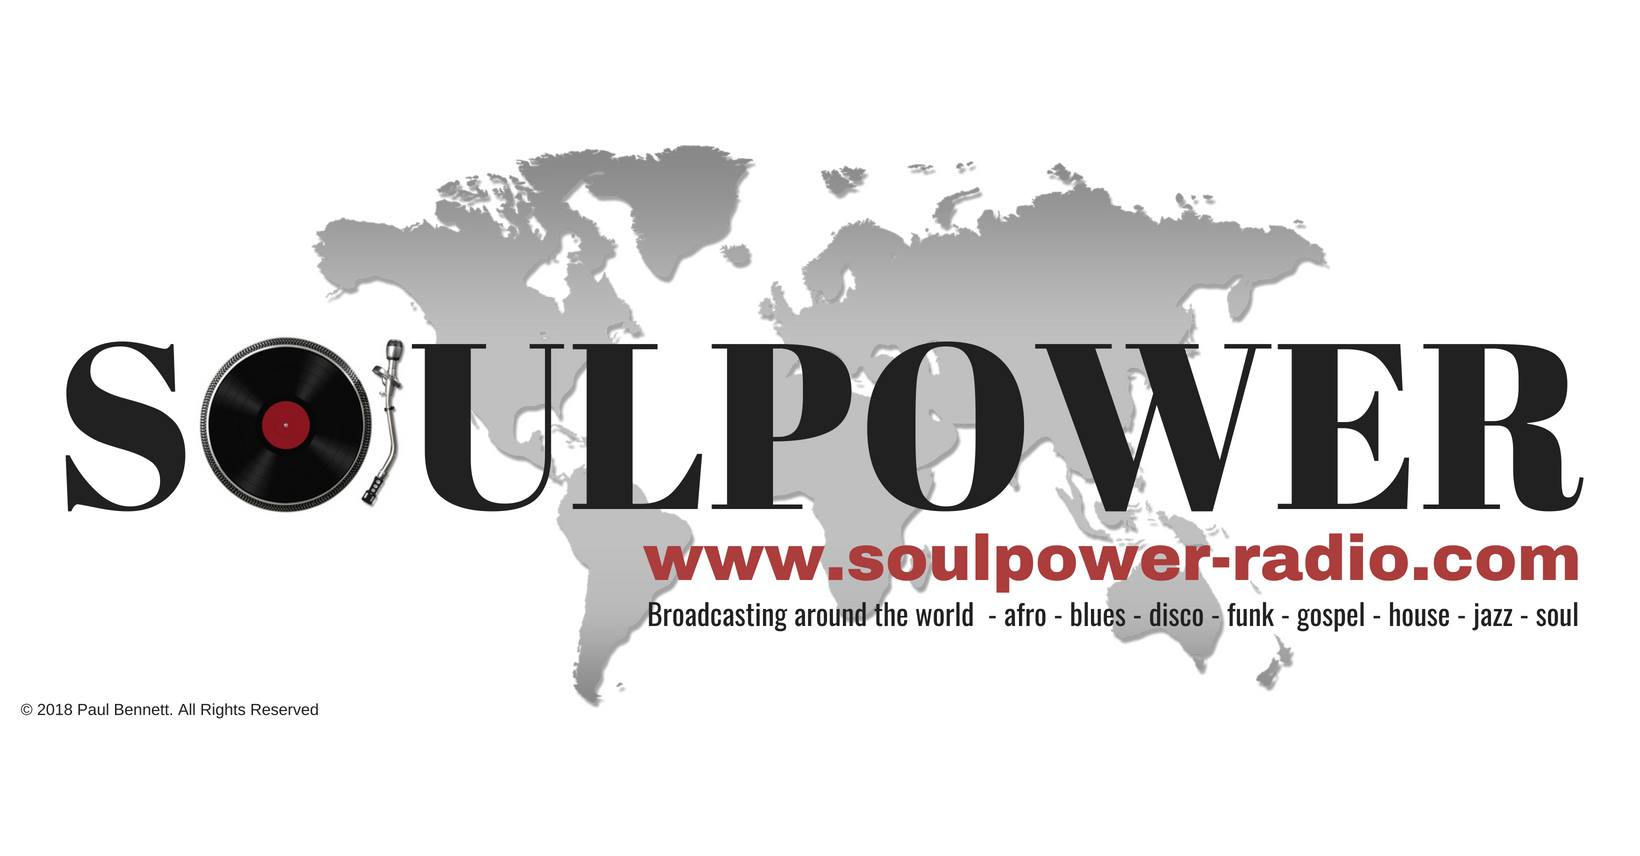 SOULPOWER- RADIO COM 100% Soul Funk & Jazz Music 24 Hours A Day